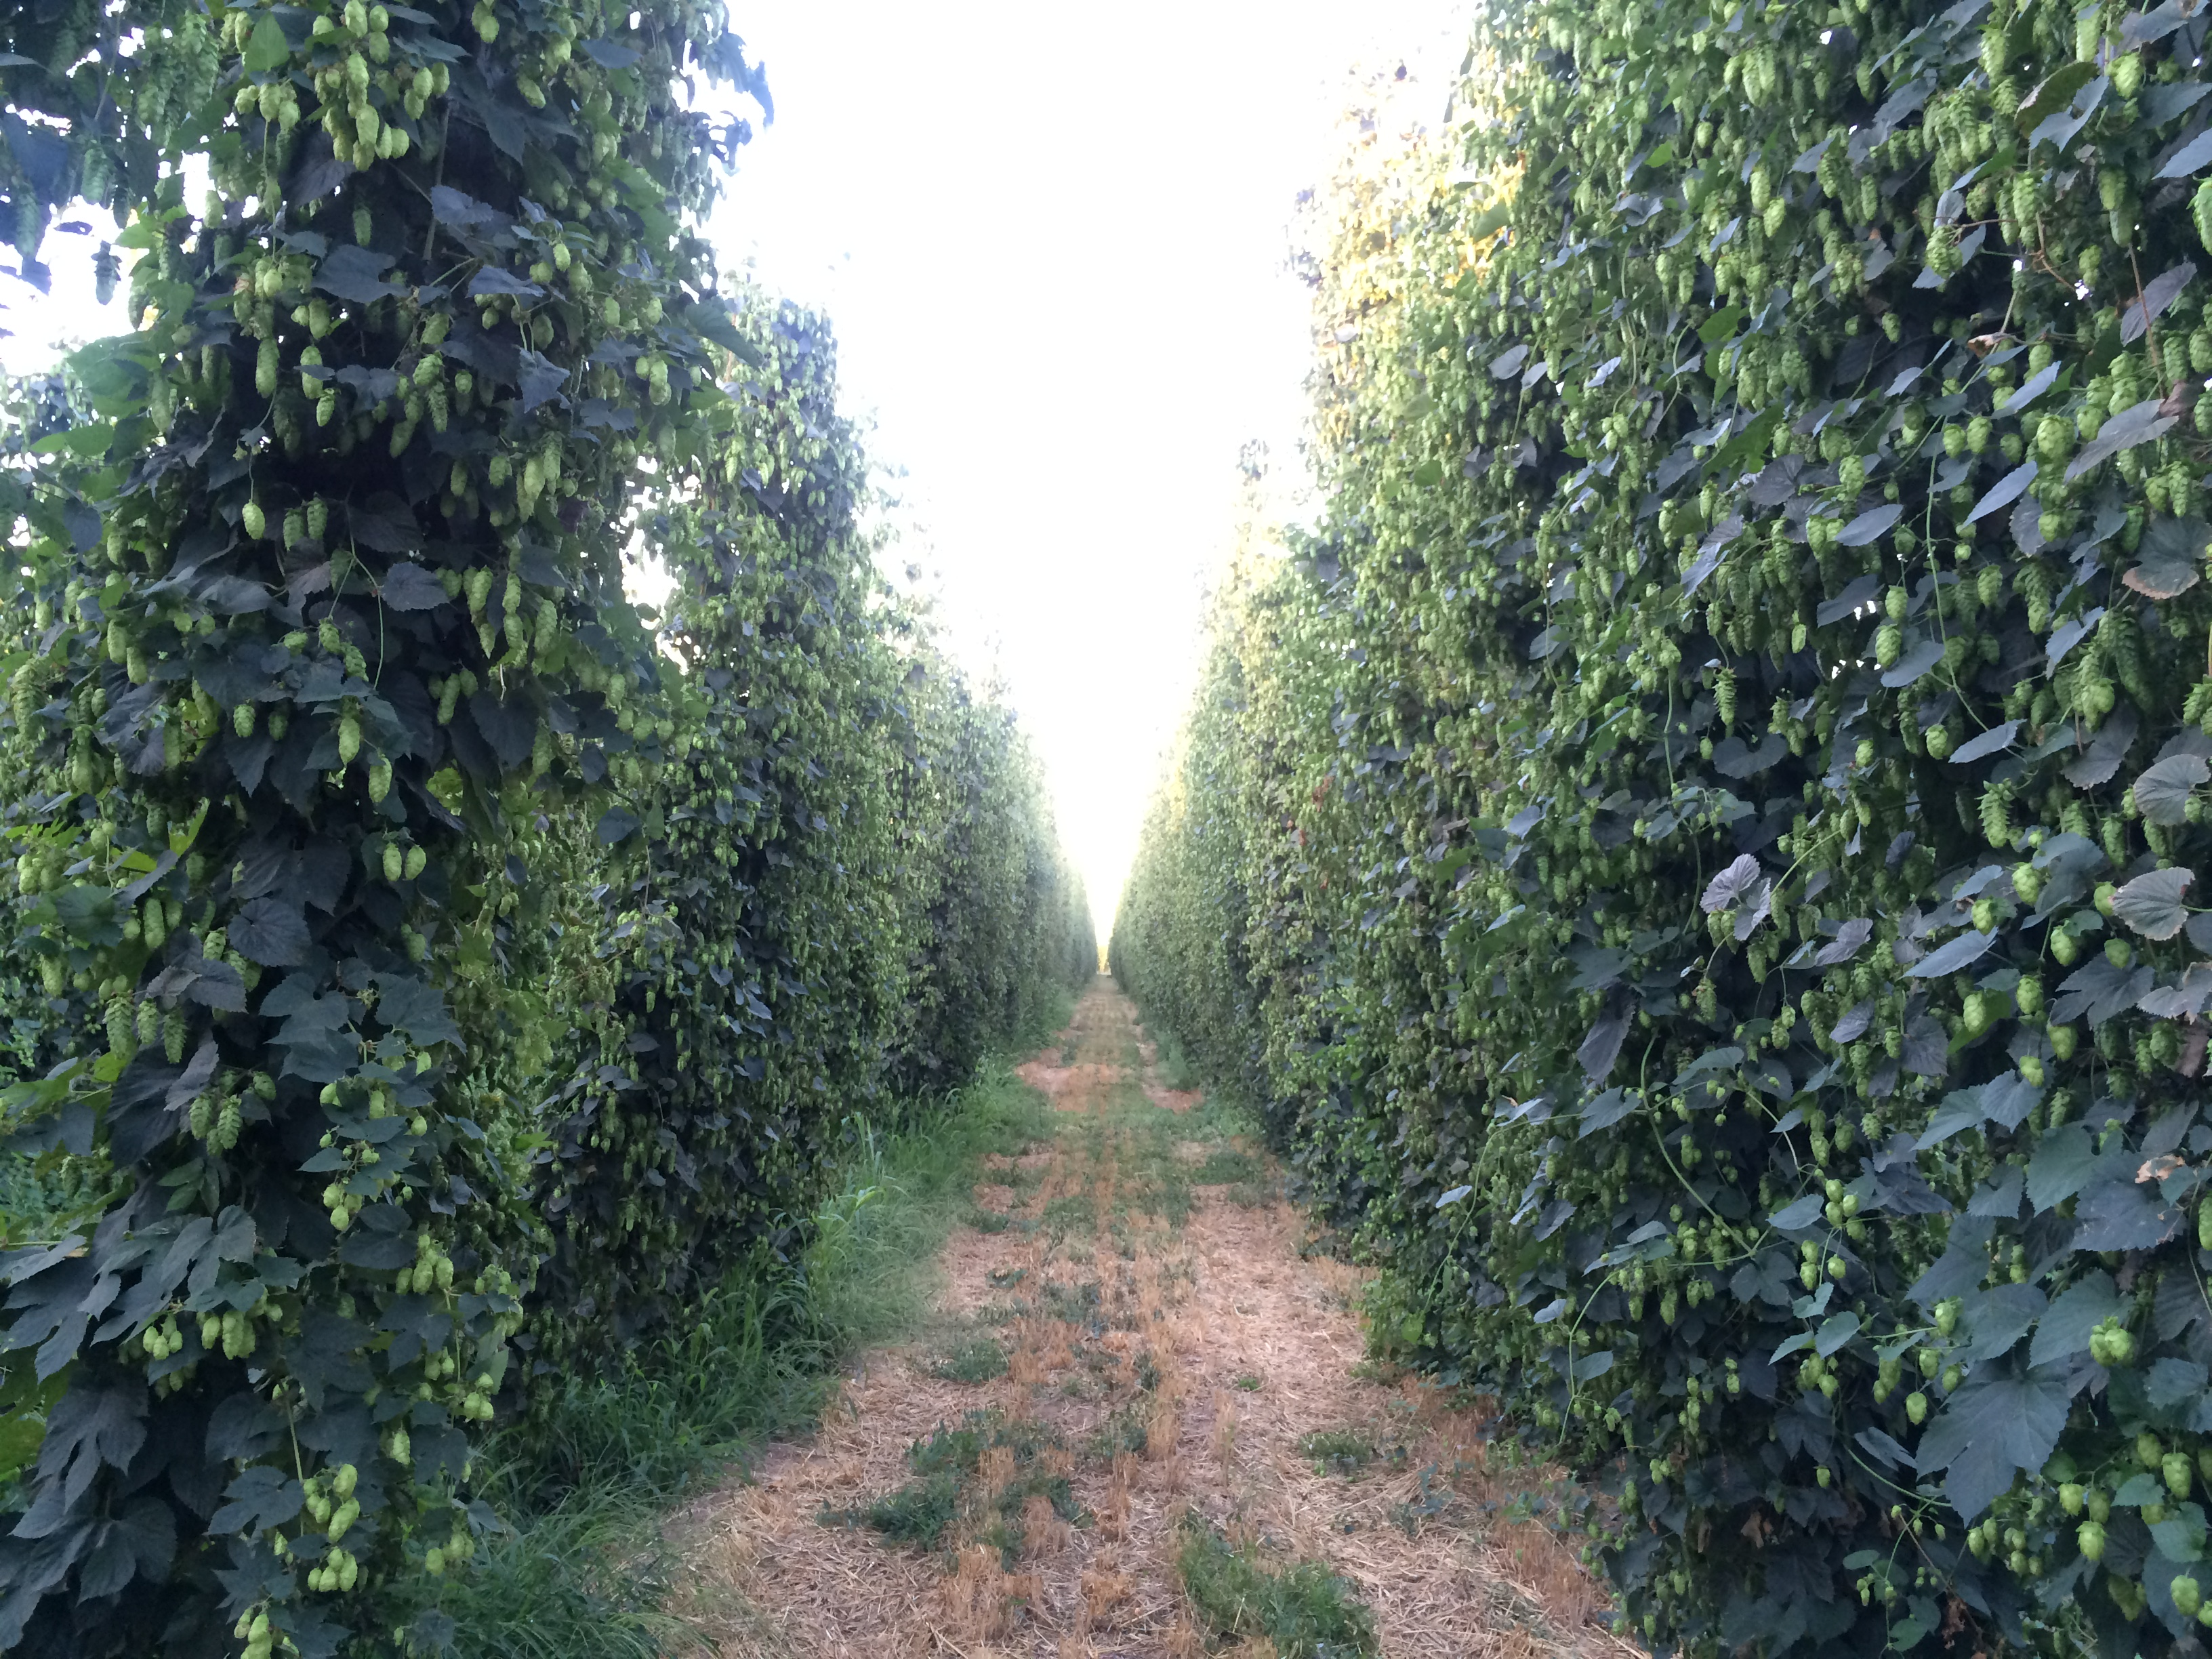 Hops grow well in the Yakima Valley thanks to irrigation from the forests of the Cascade Mountains and the rich soil and sun in central Washington State. Photo by Heather Hadsel